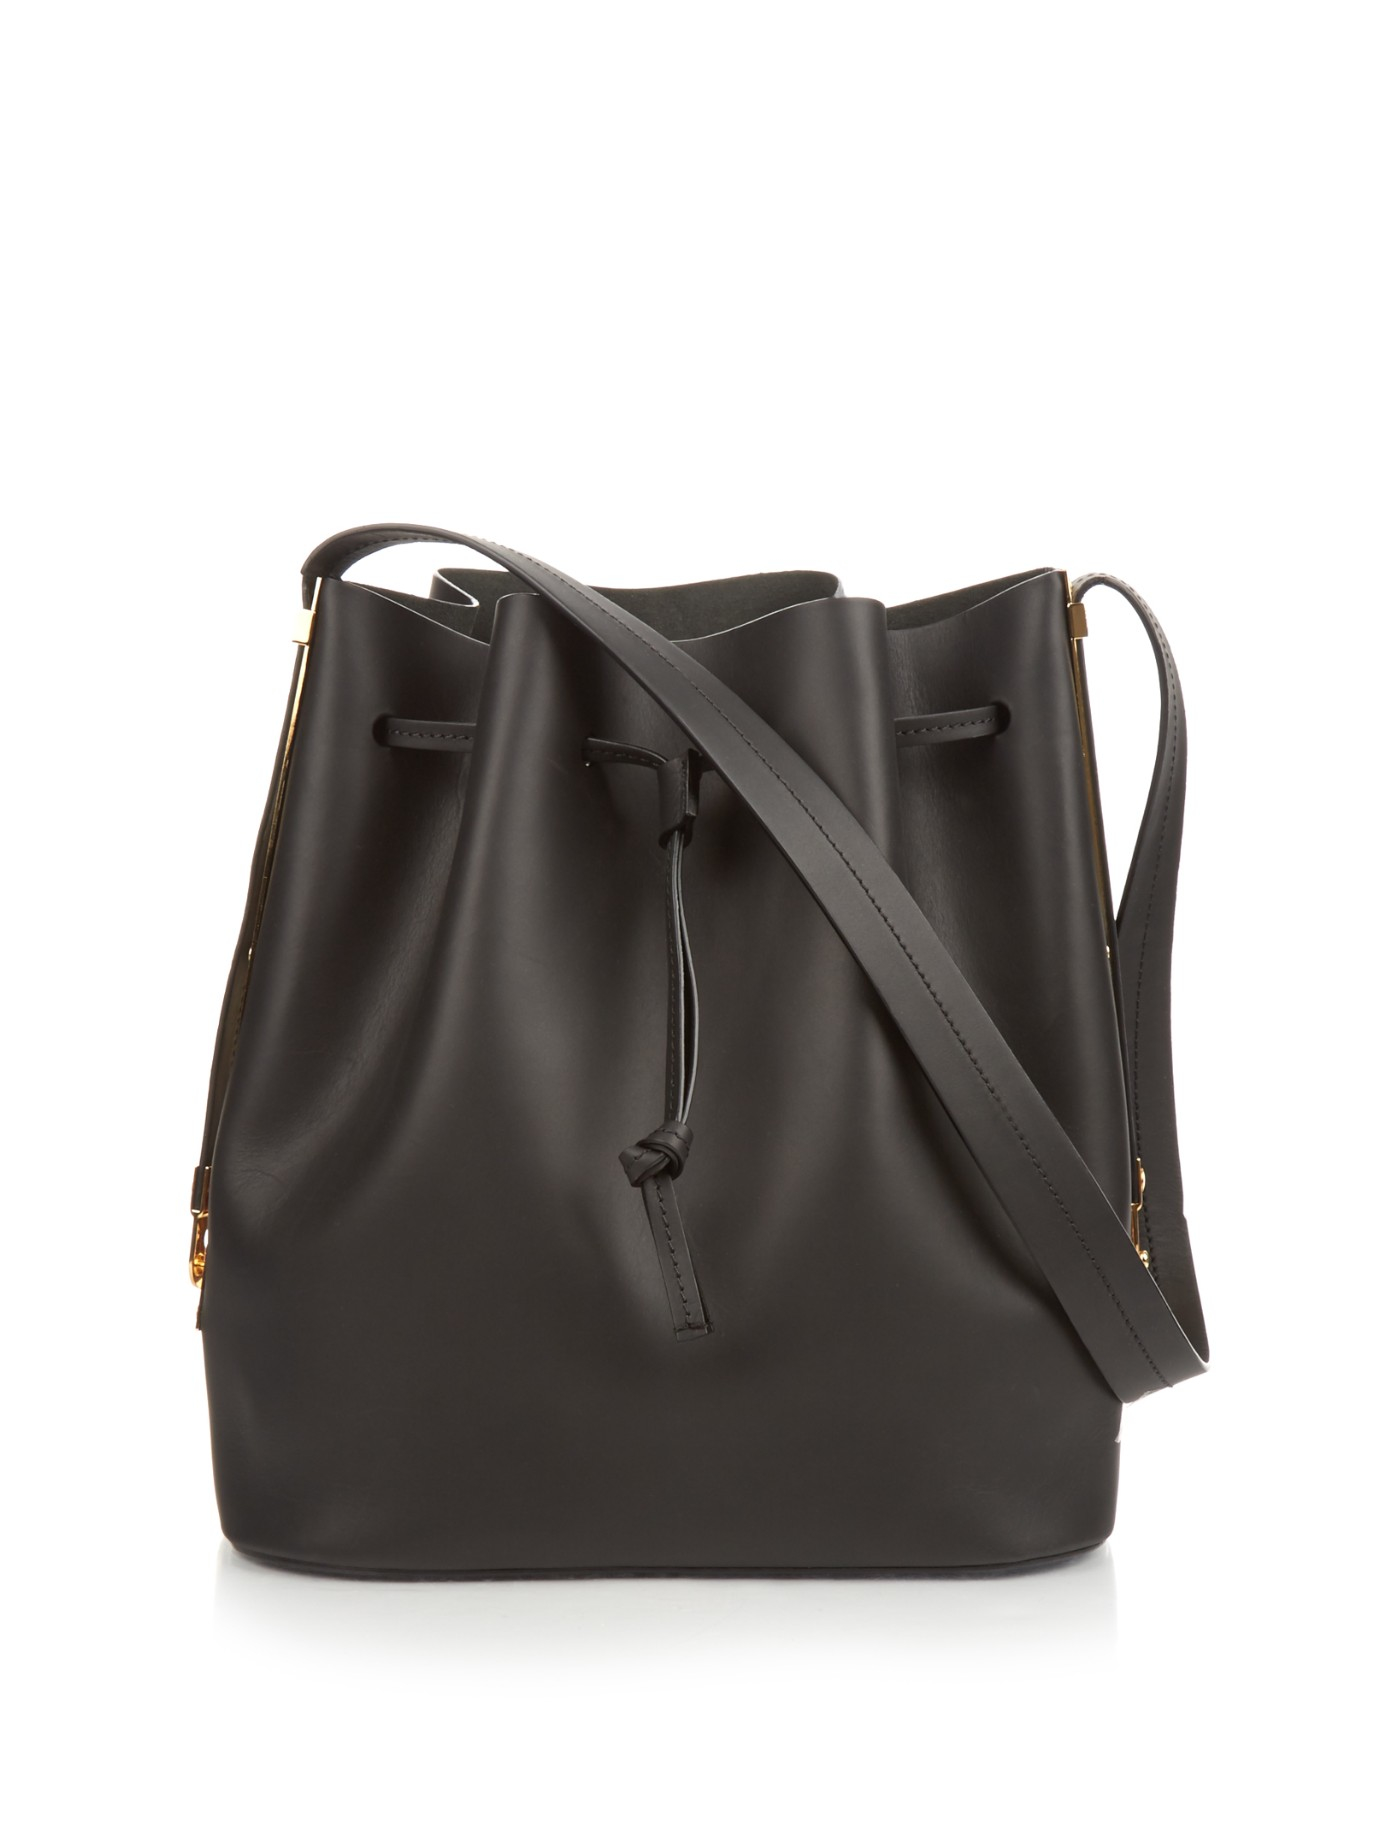 605a72f40cb4 Lyst - Sophie Hulme Gibson Leather Bucket Bag in Black